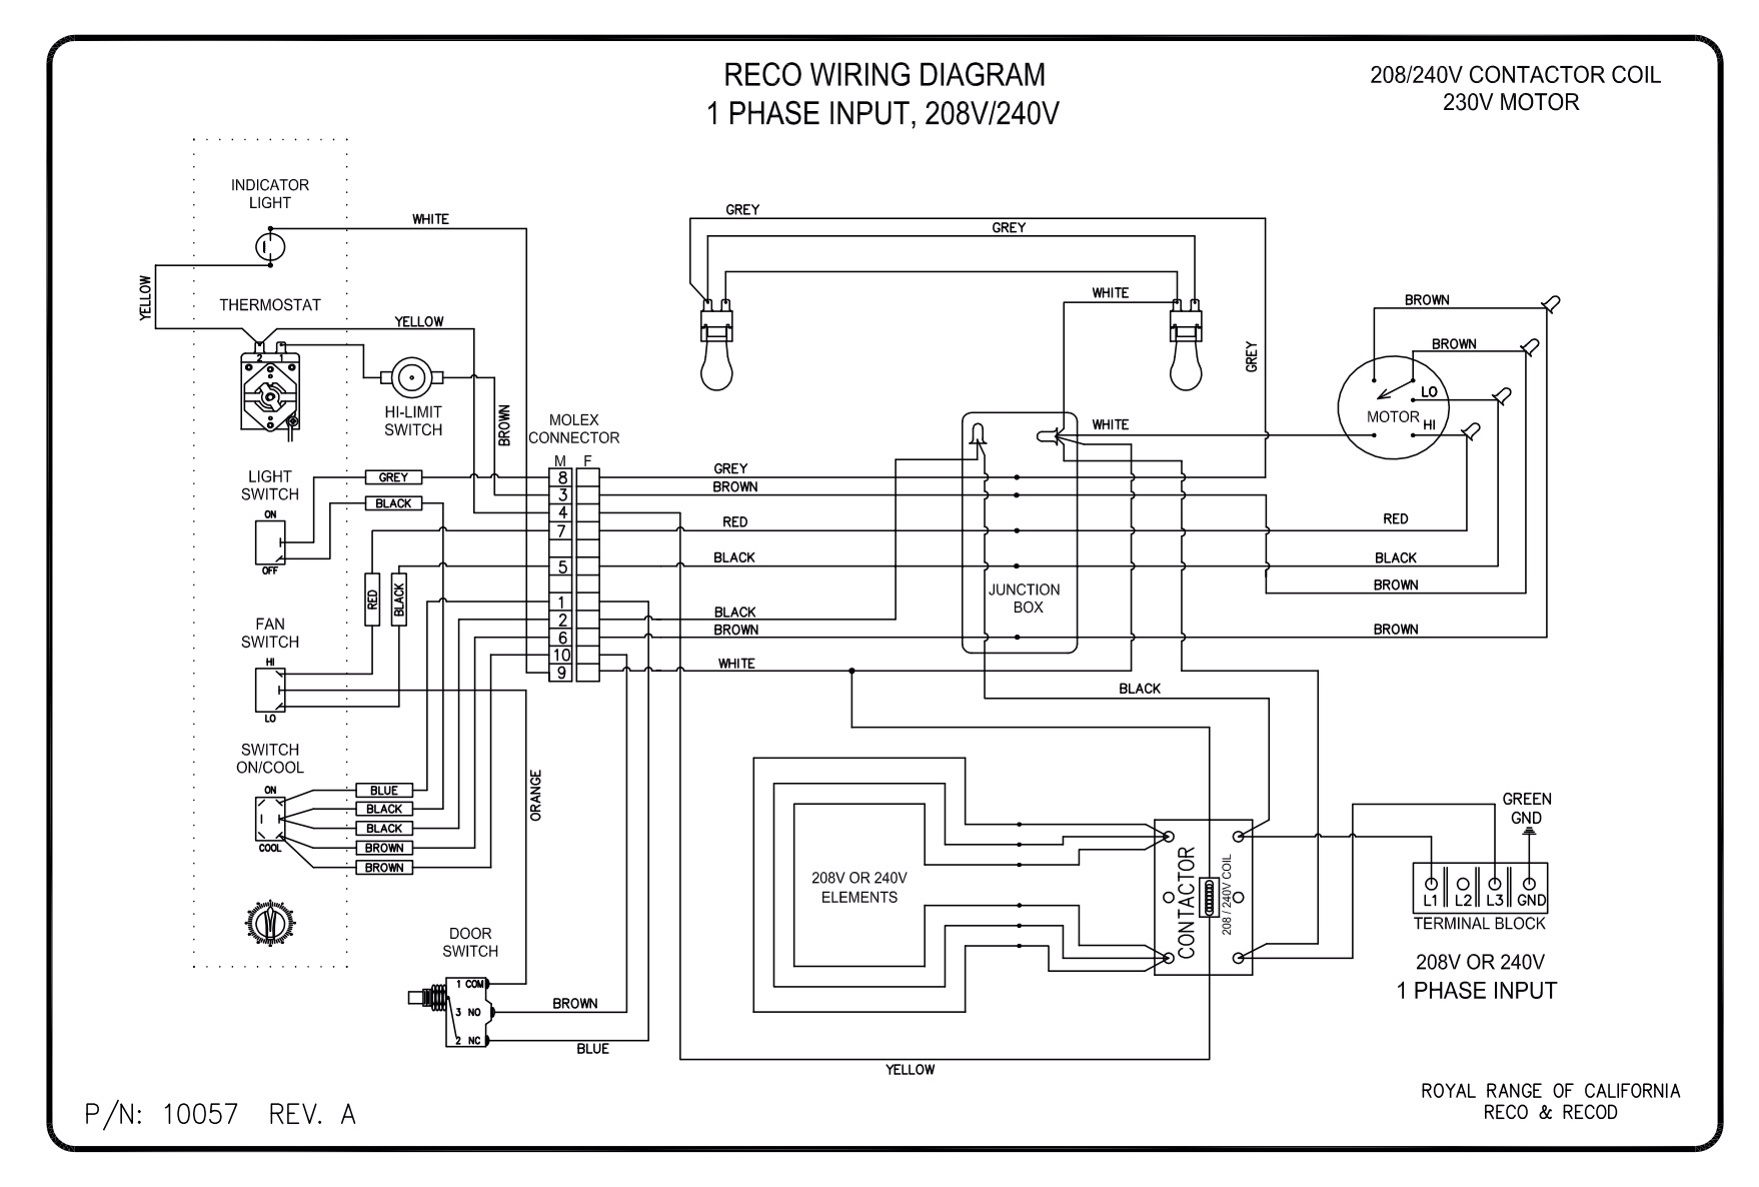 RECO1 wiring diagrams royal range of california oven wiring diagrams at soozxer.org